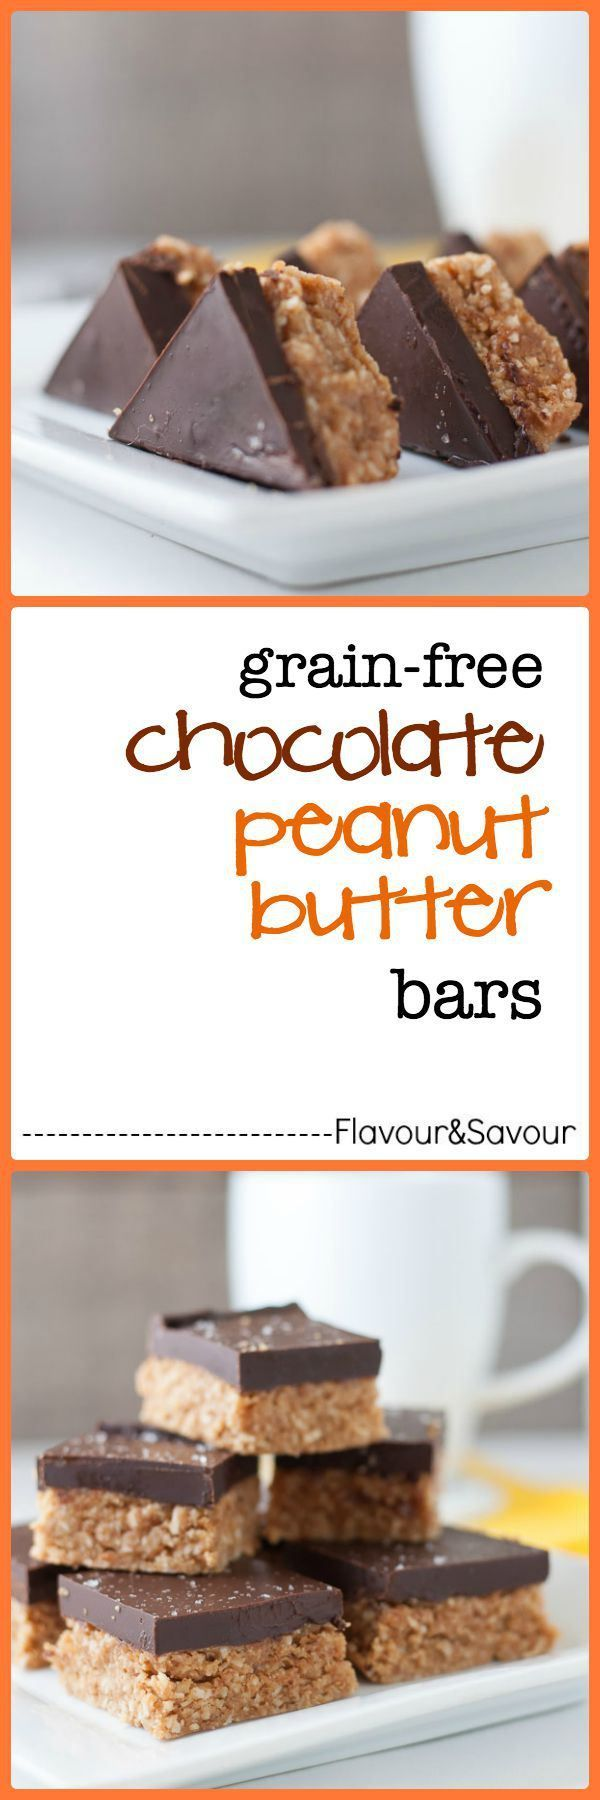 PALEO. Grain-free, no-bake Chocolate Peanut Butter bars. Ready in 20 minutes! A healthier version of the one's Mom used to make.